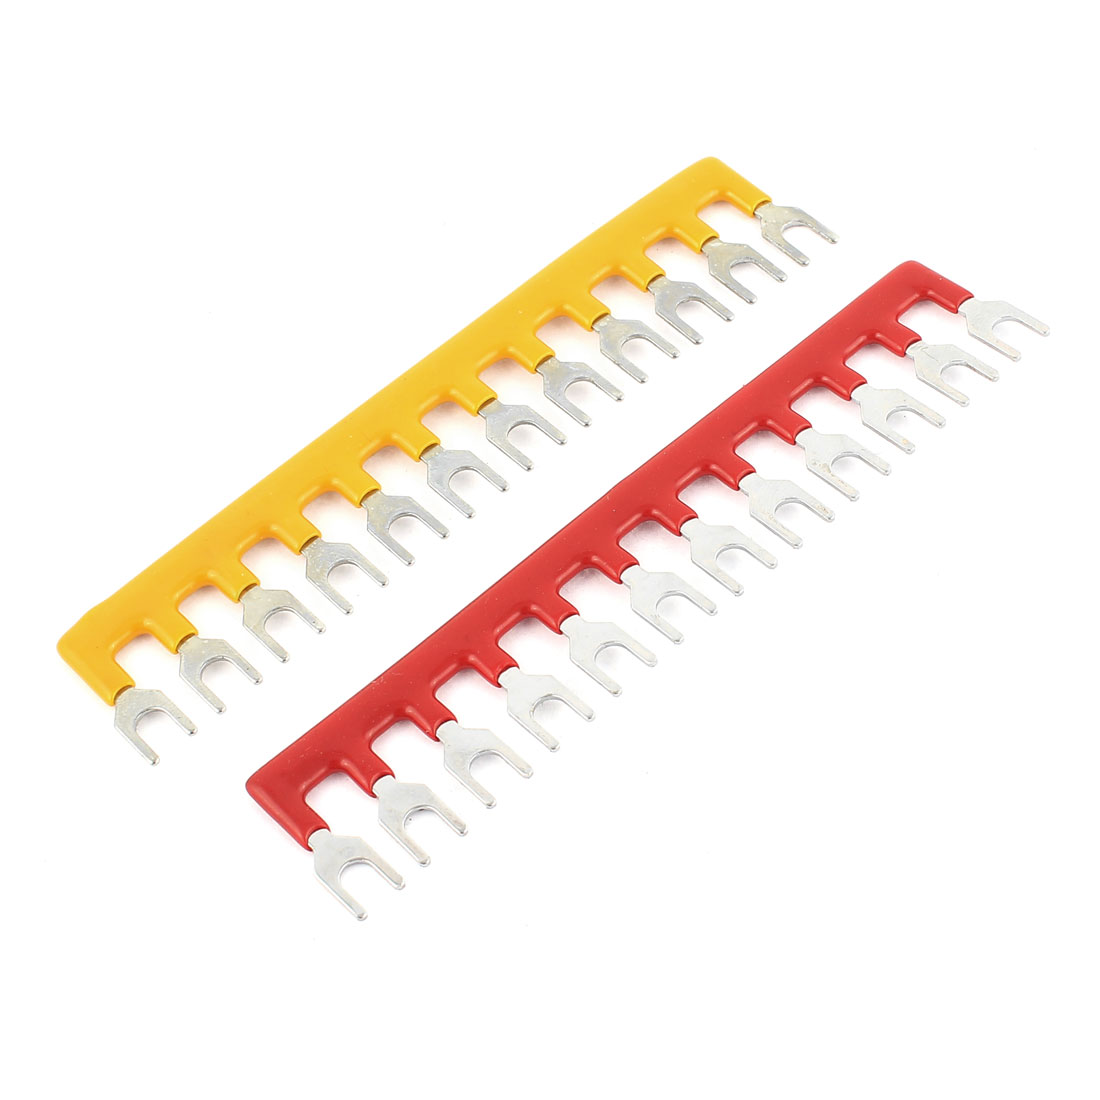 2 Pcs 12 Postions Pre Insulated Fork Type Barrier Spades Terminal Strips